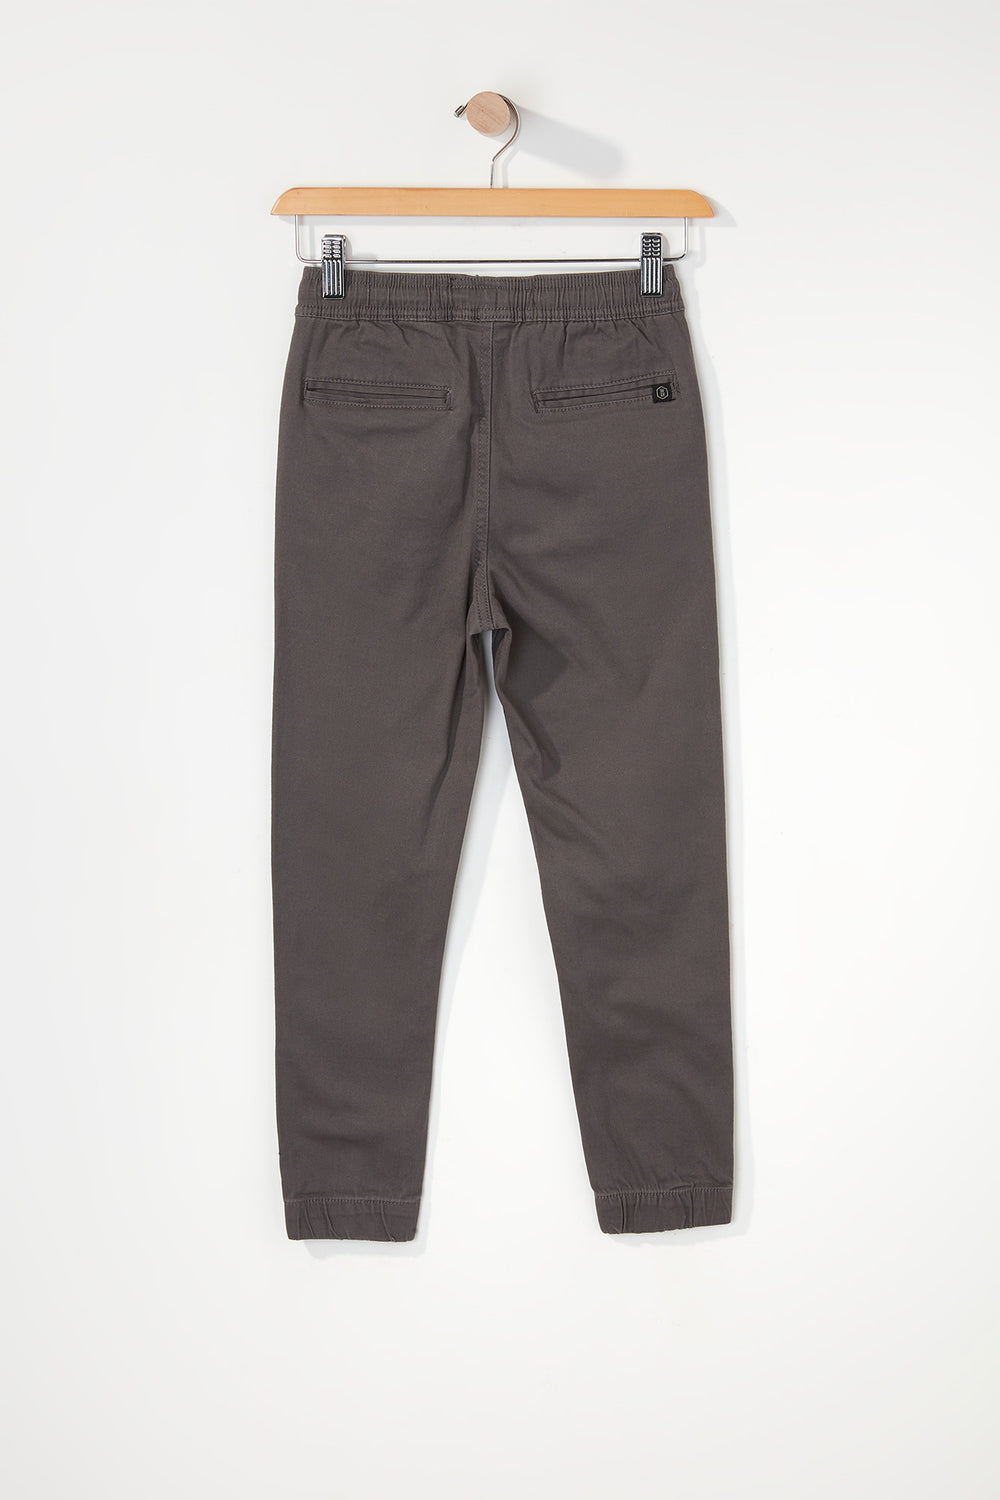 West49 Boys Basic Jogger Dark Grey